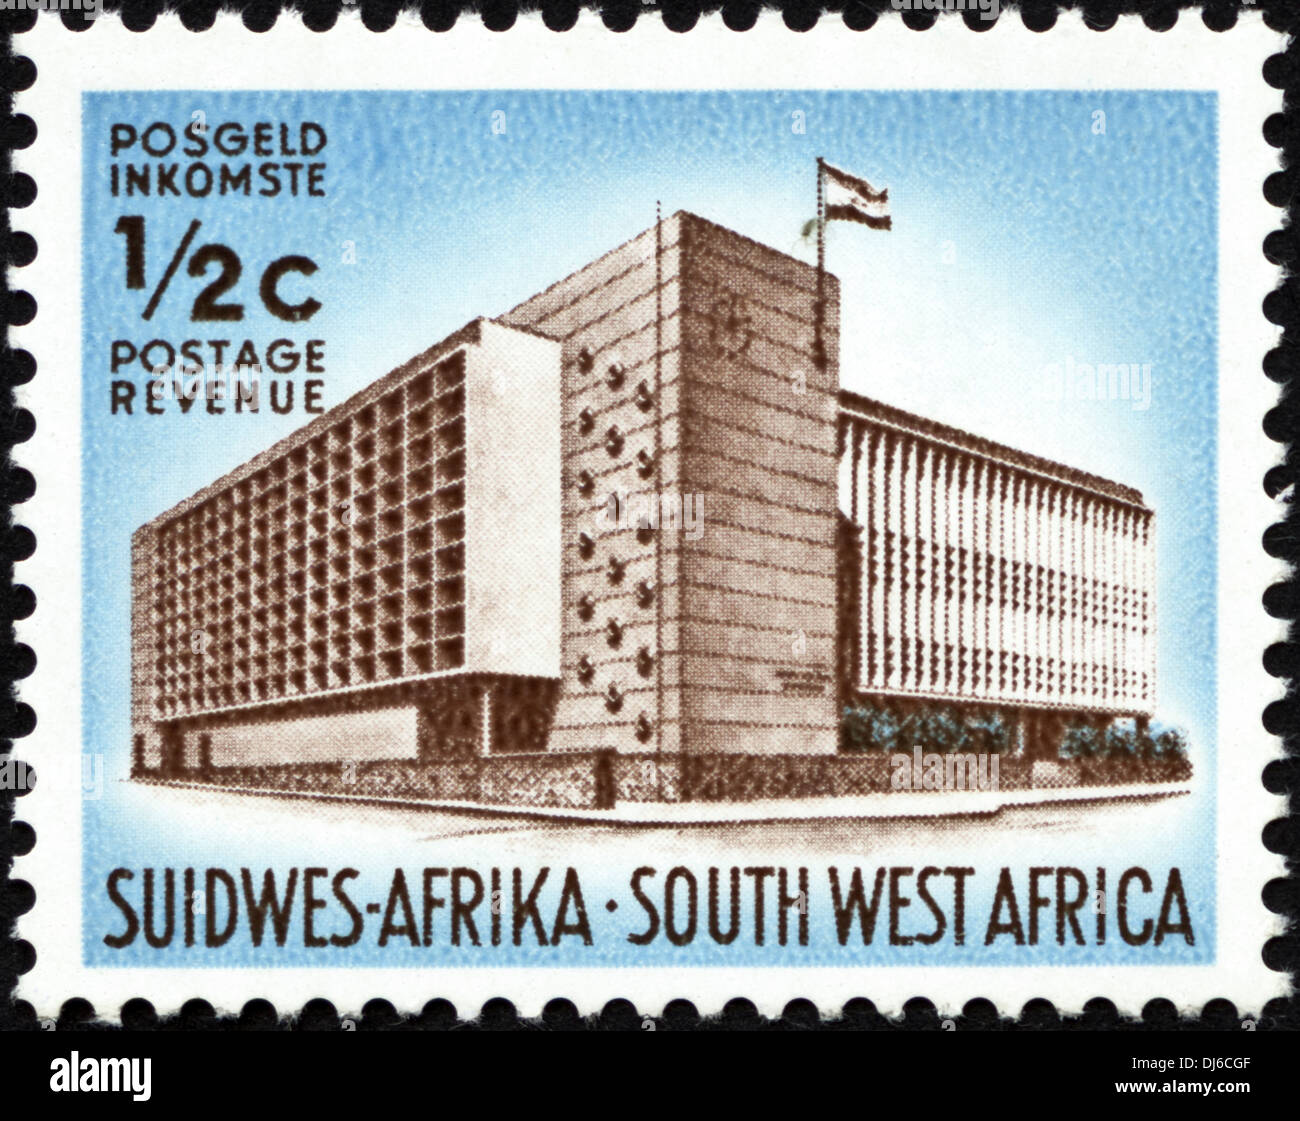 postage stamp South West Africa ½c featuring public building dated 1961 - Stock Image